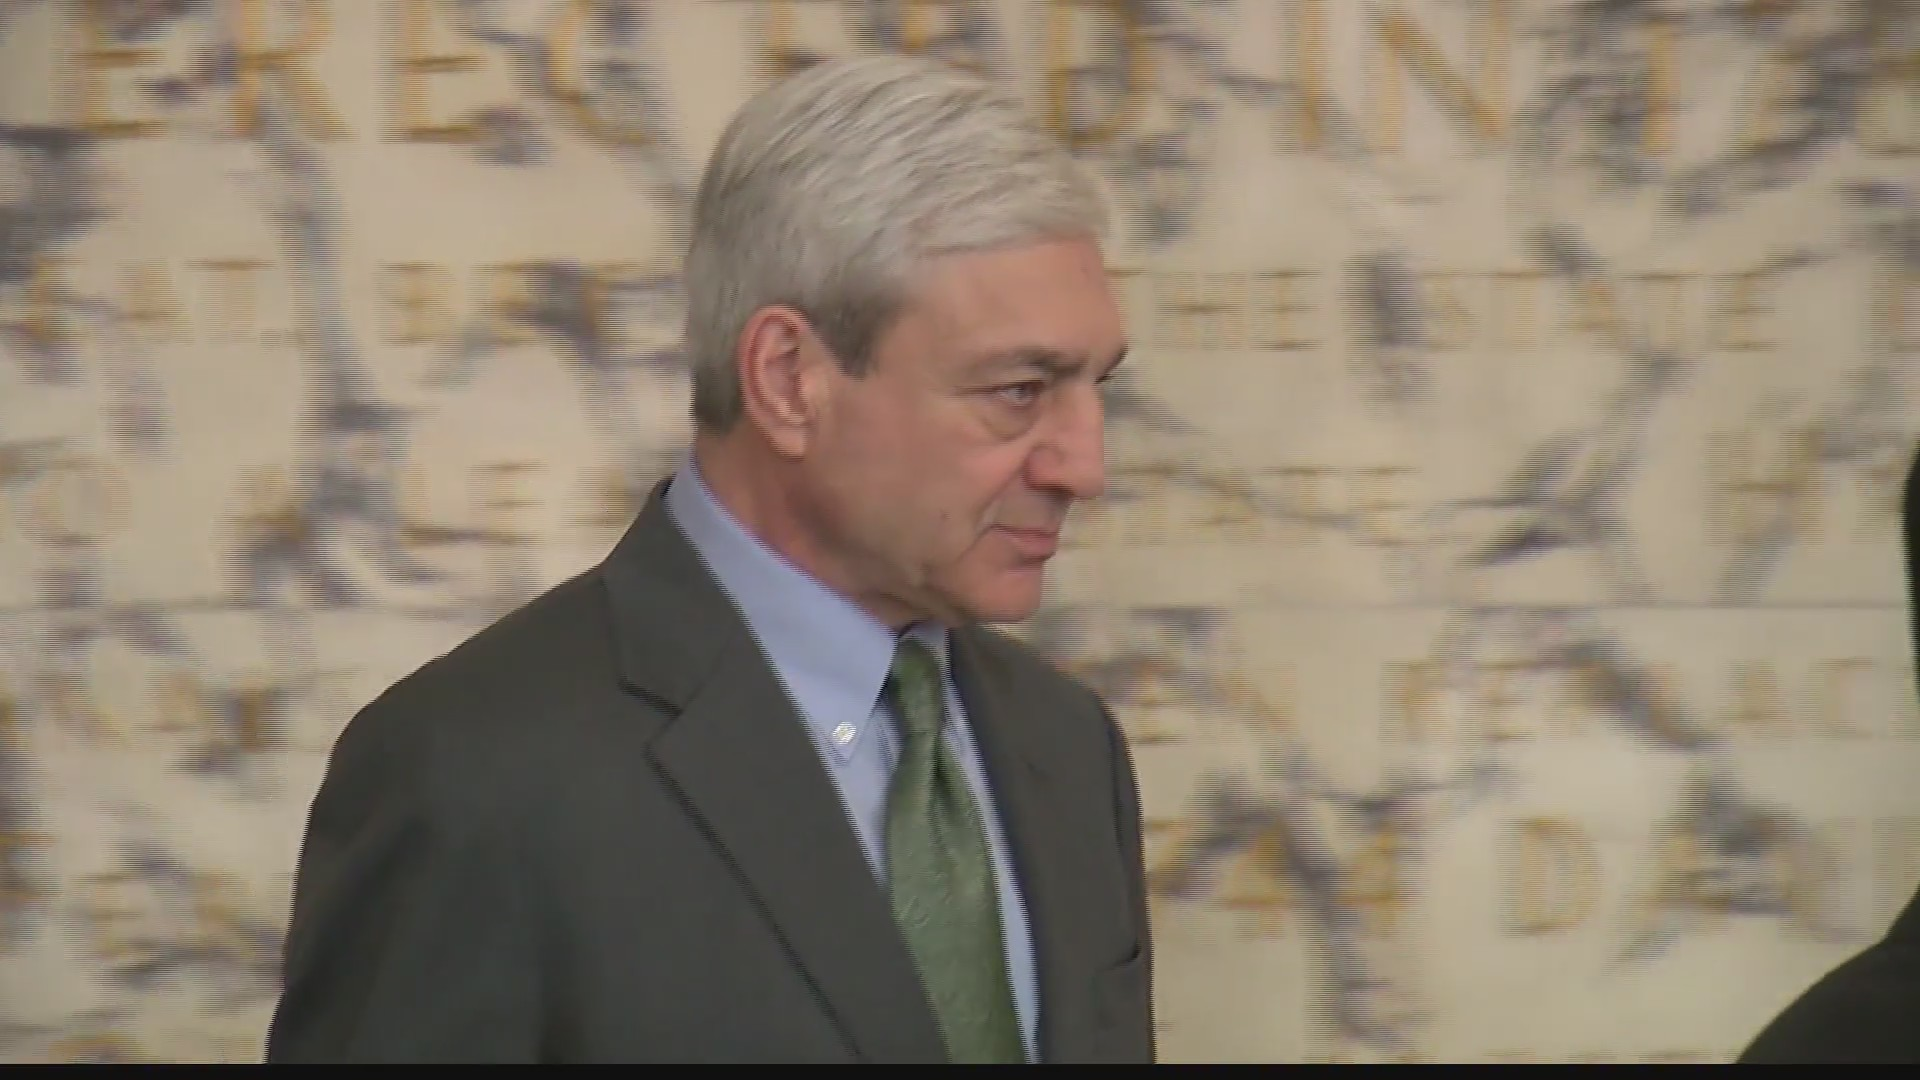 Graham_Spanier_no_longer_headed_to_jail__0_20190501033029